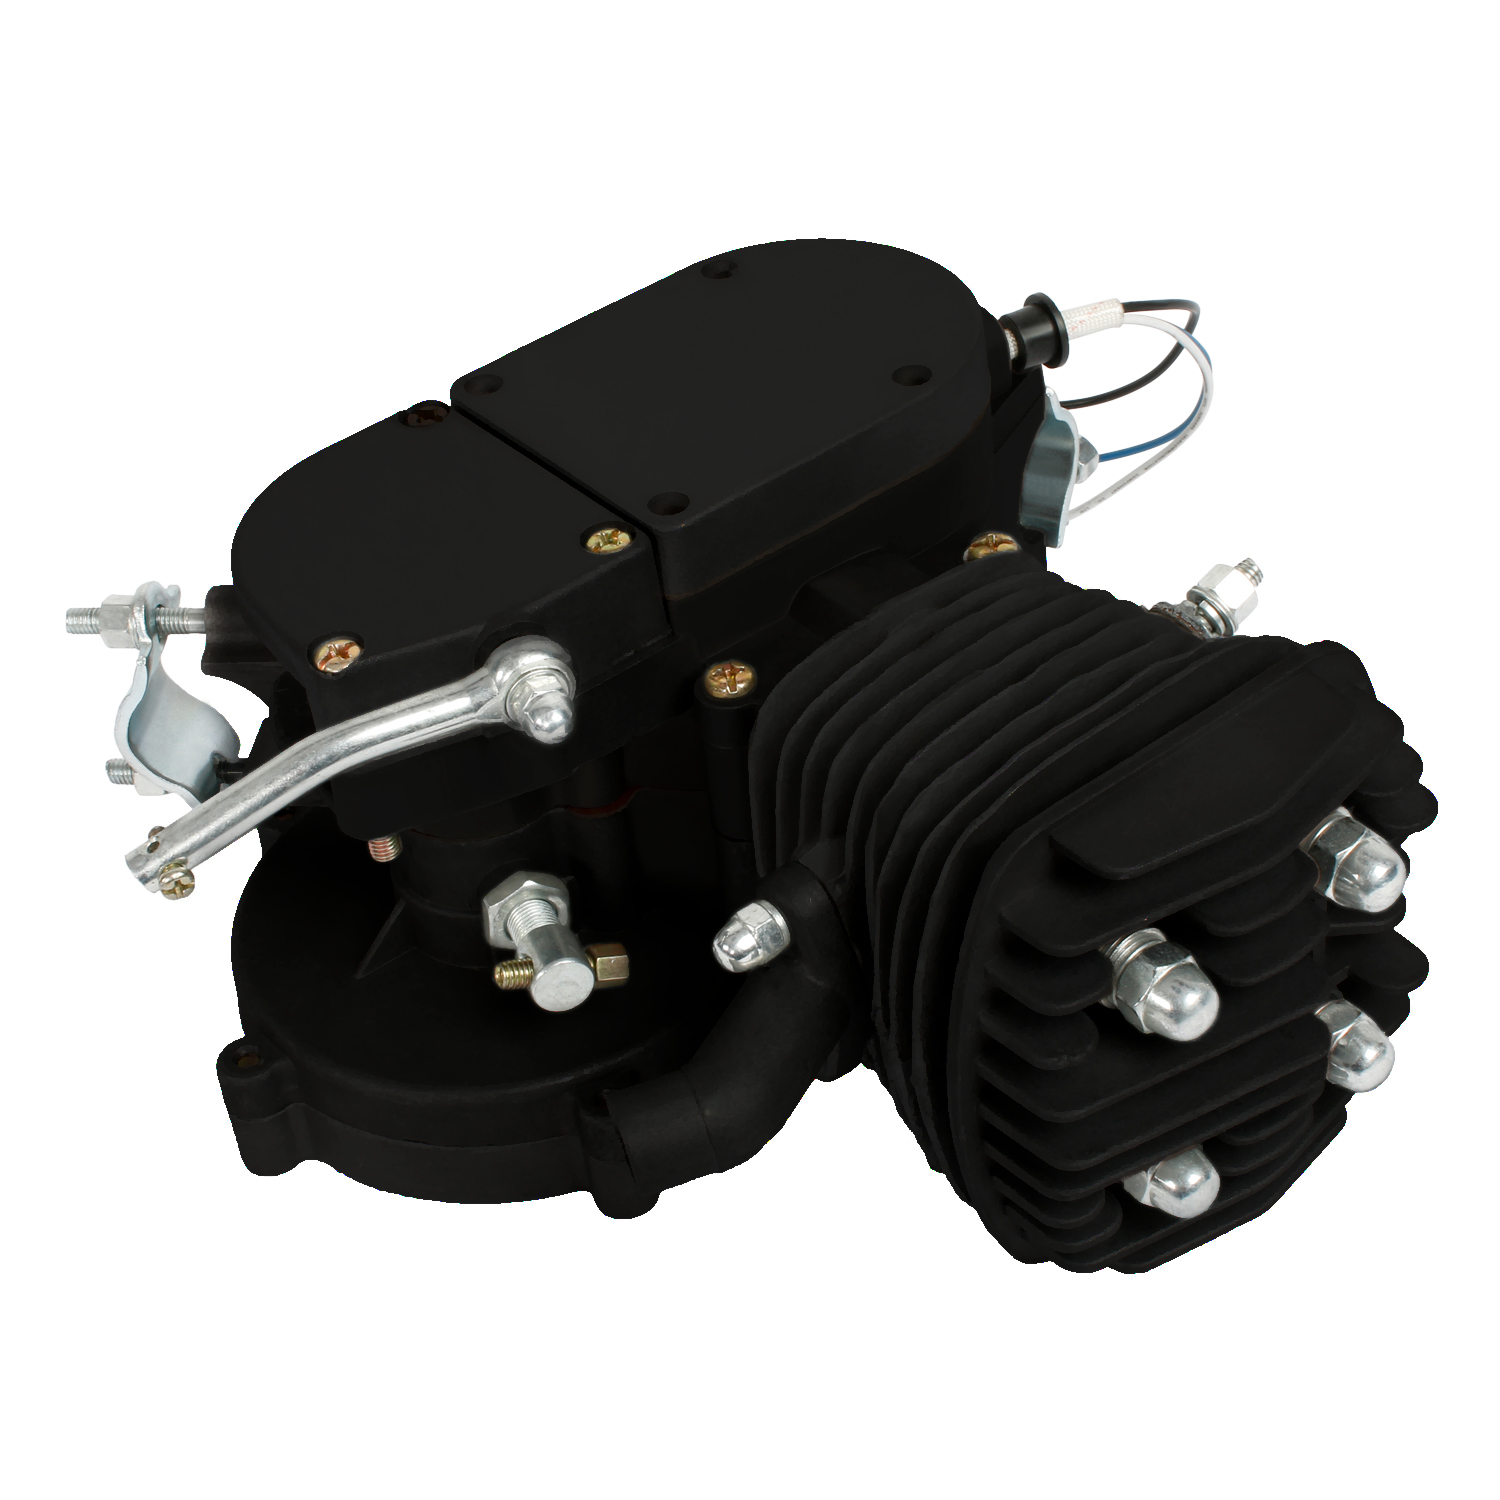 Details about Hot Sale 80cc 2 Stroke Motor Engine Kit Gas for Motorized  Bicycle Bike Black New